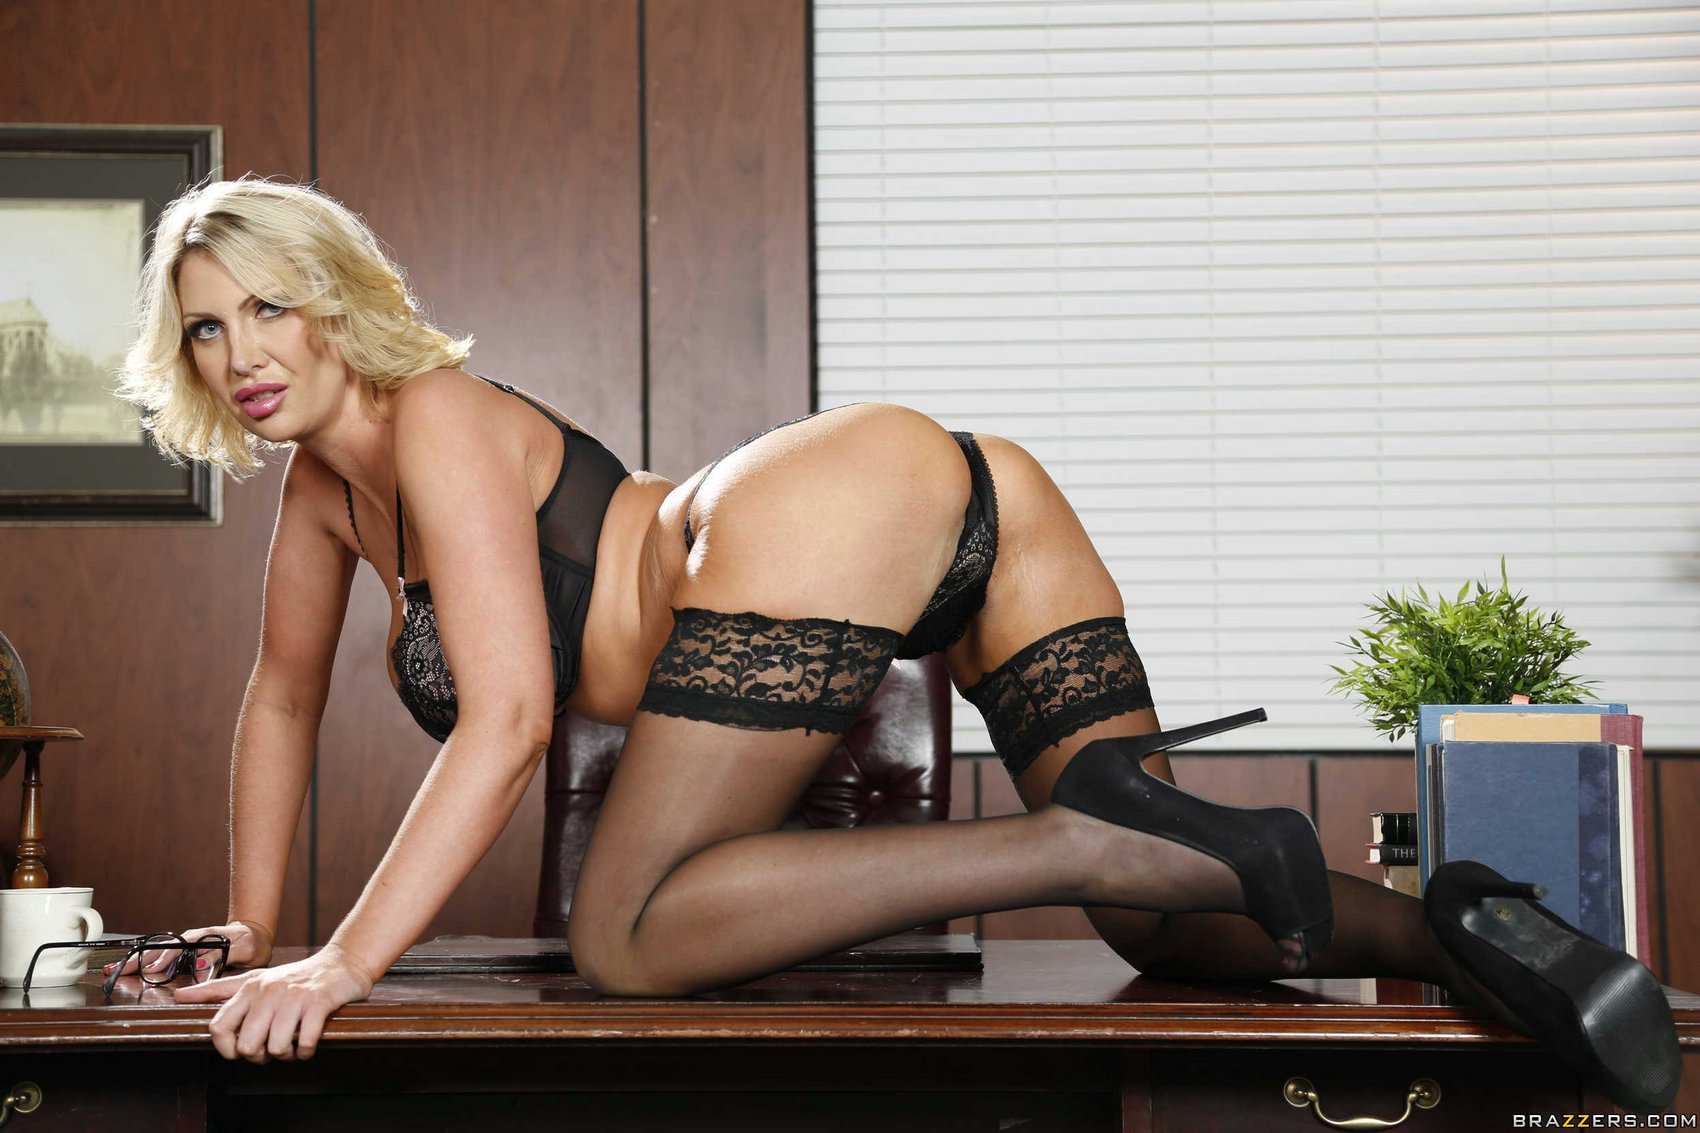 Leigh Darby In Black Stockings And Heels Posing In The -8607